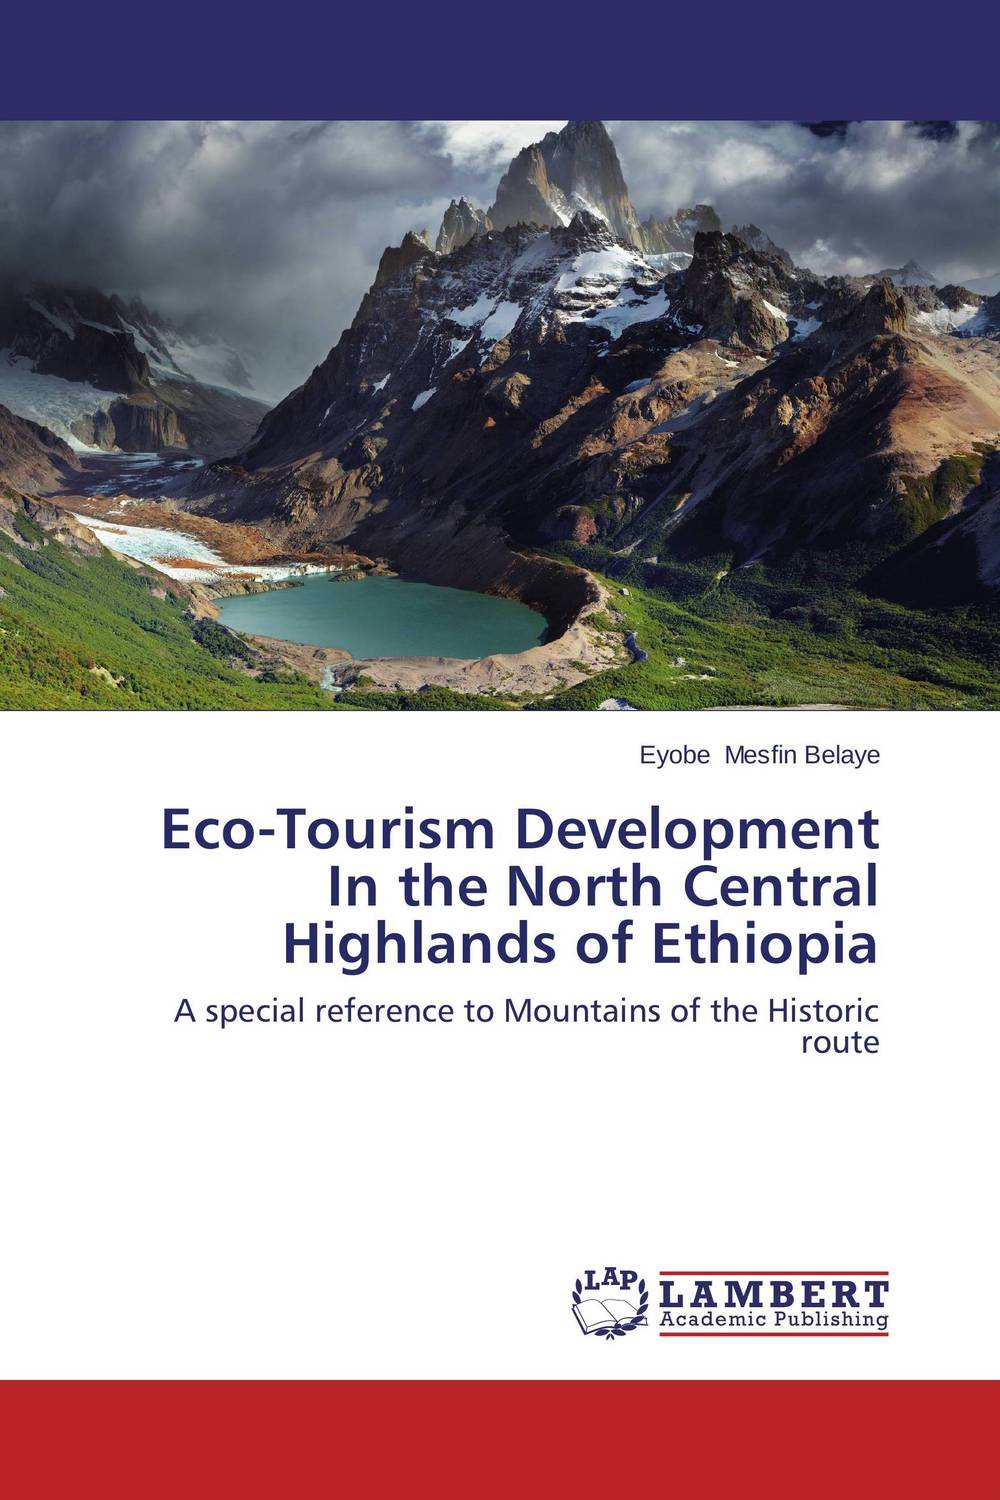 Eco-Tourism Development In the North Central Highlands of Ethiopia olorunfemi samuel oluwaseyi tourism development in nigeria